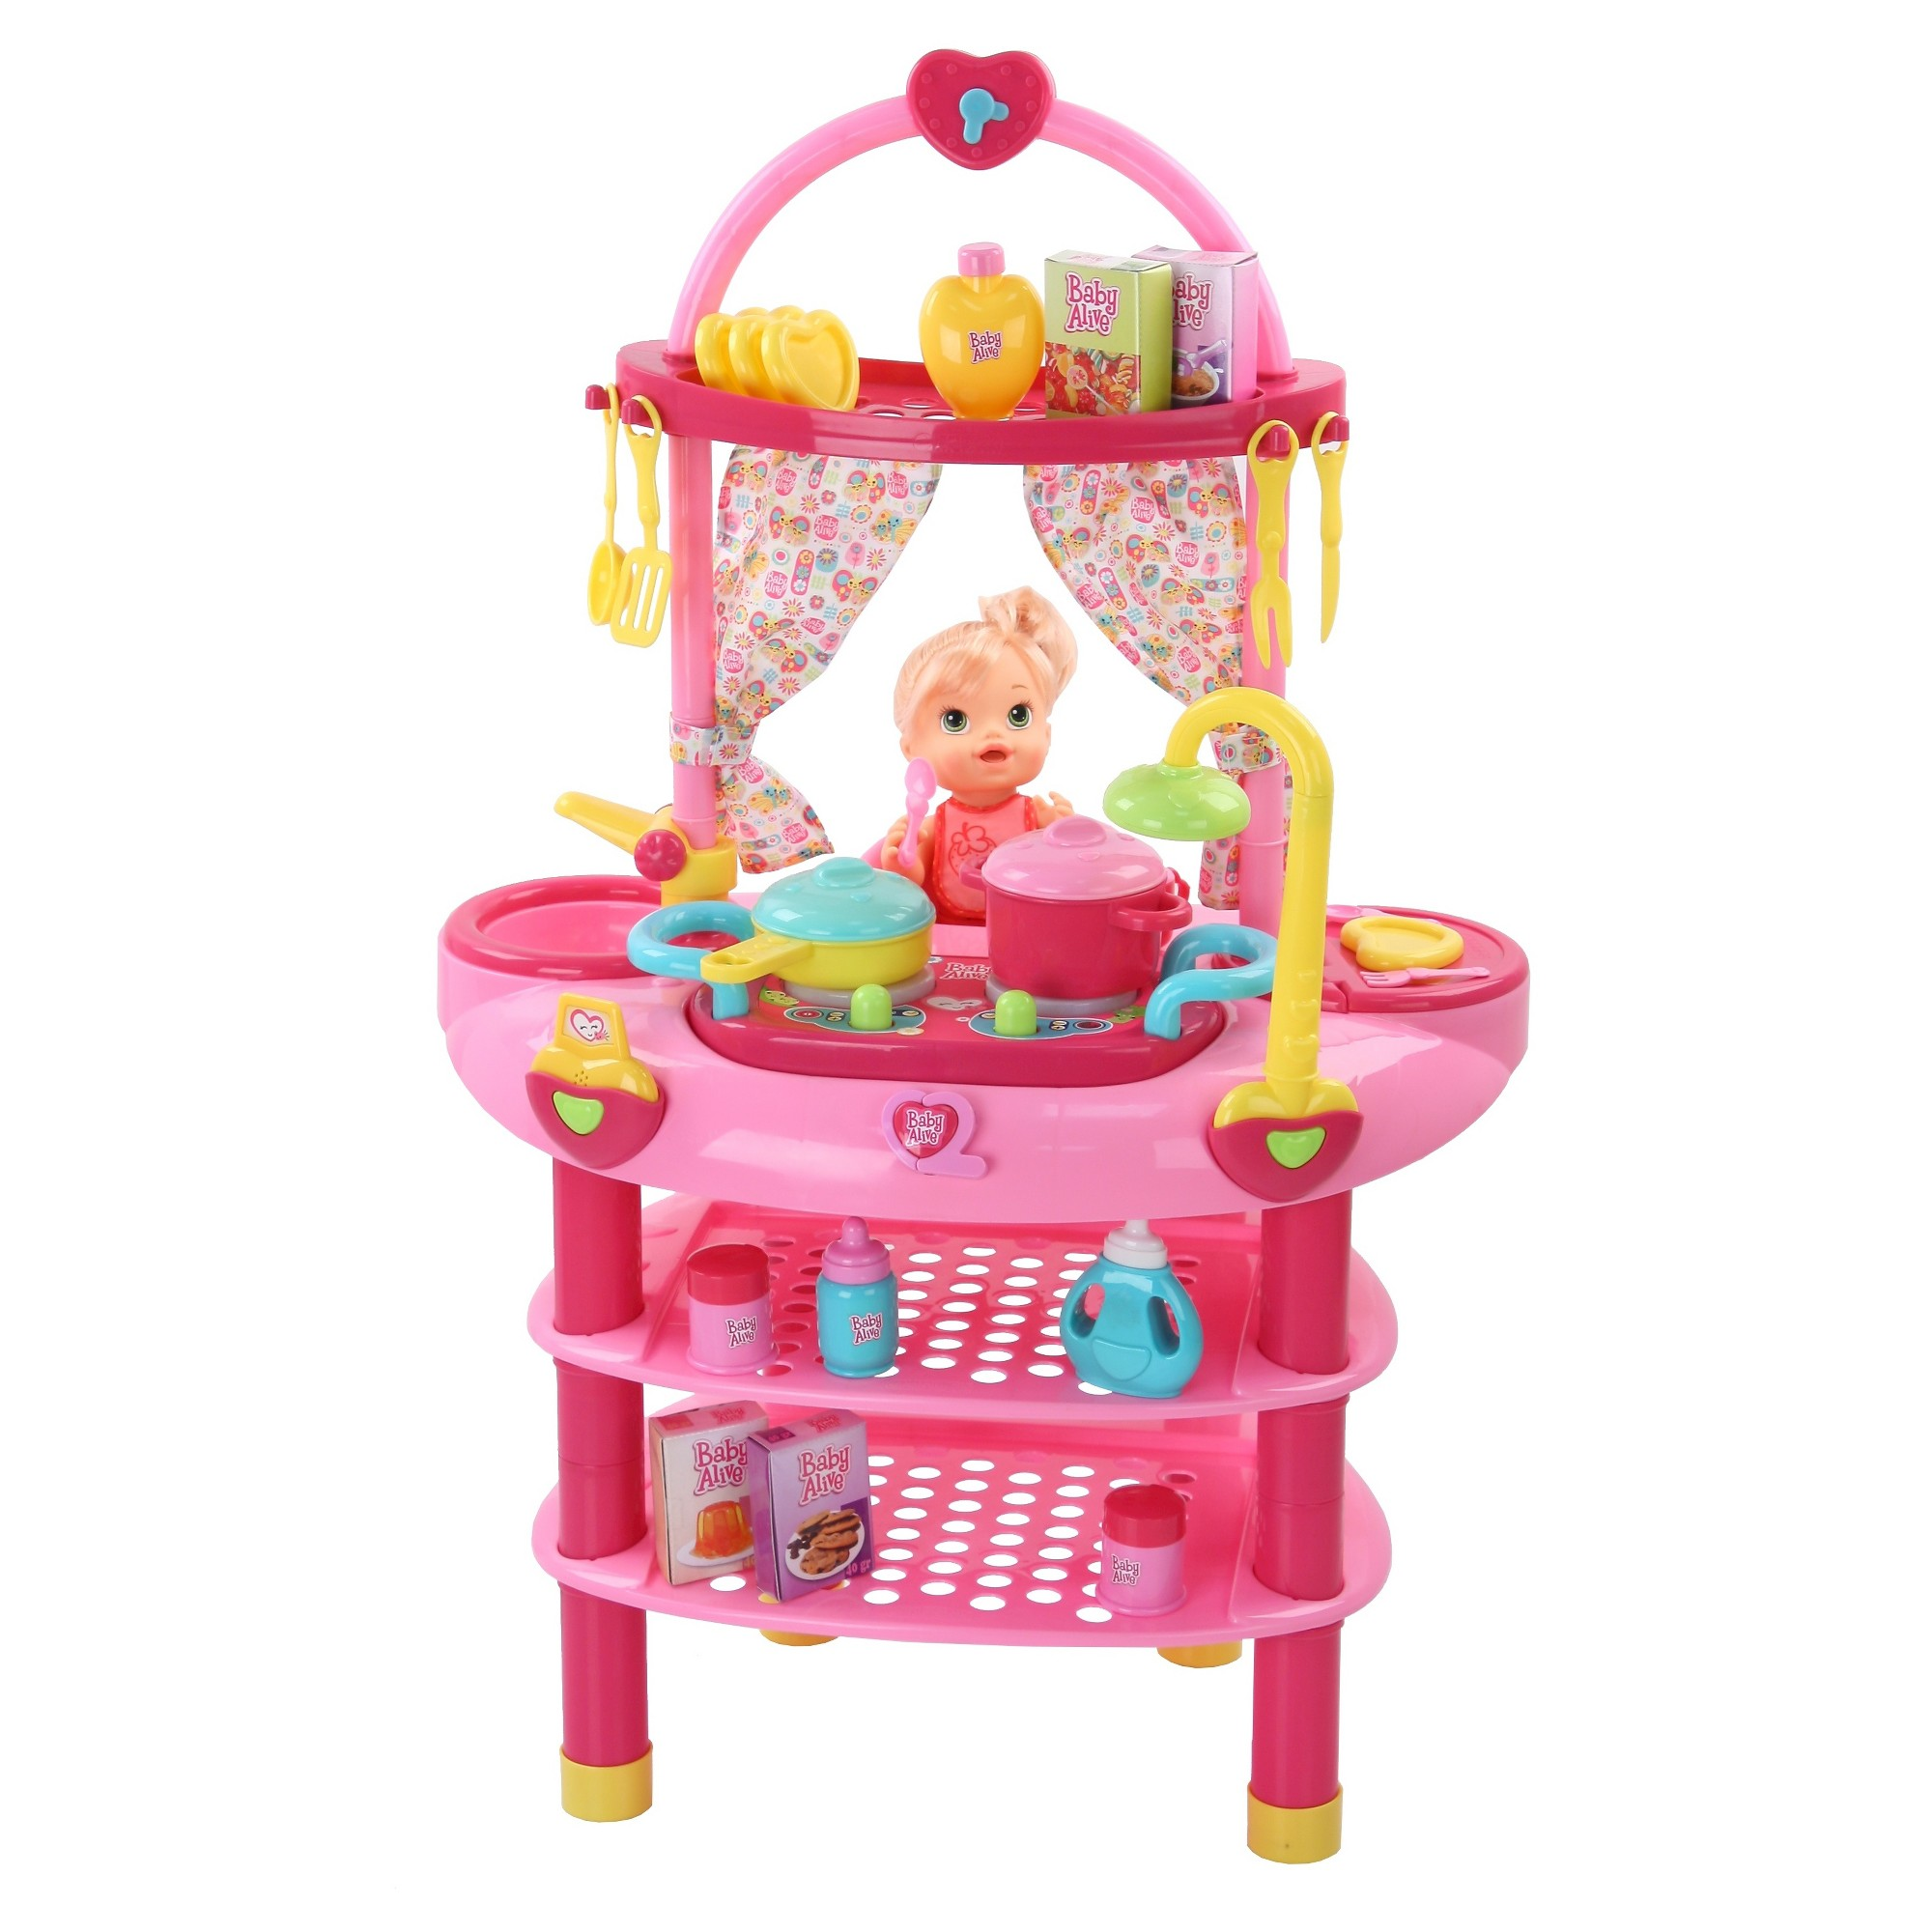 Baby Alive Cook N Care Set Baby Alive Dolls Baby Dolls For Kids Baby Alive